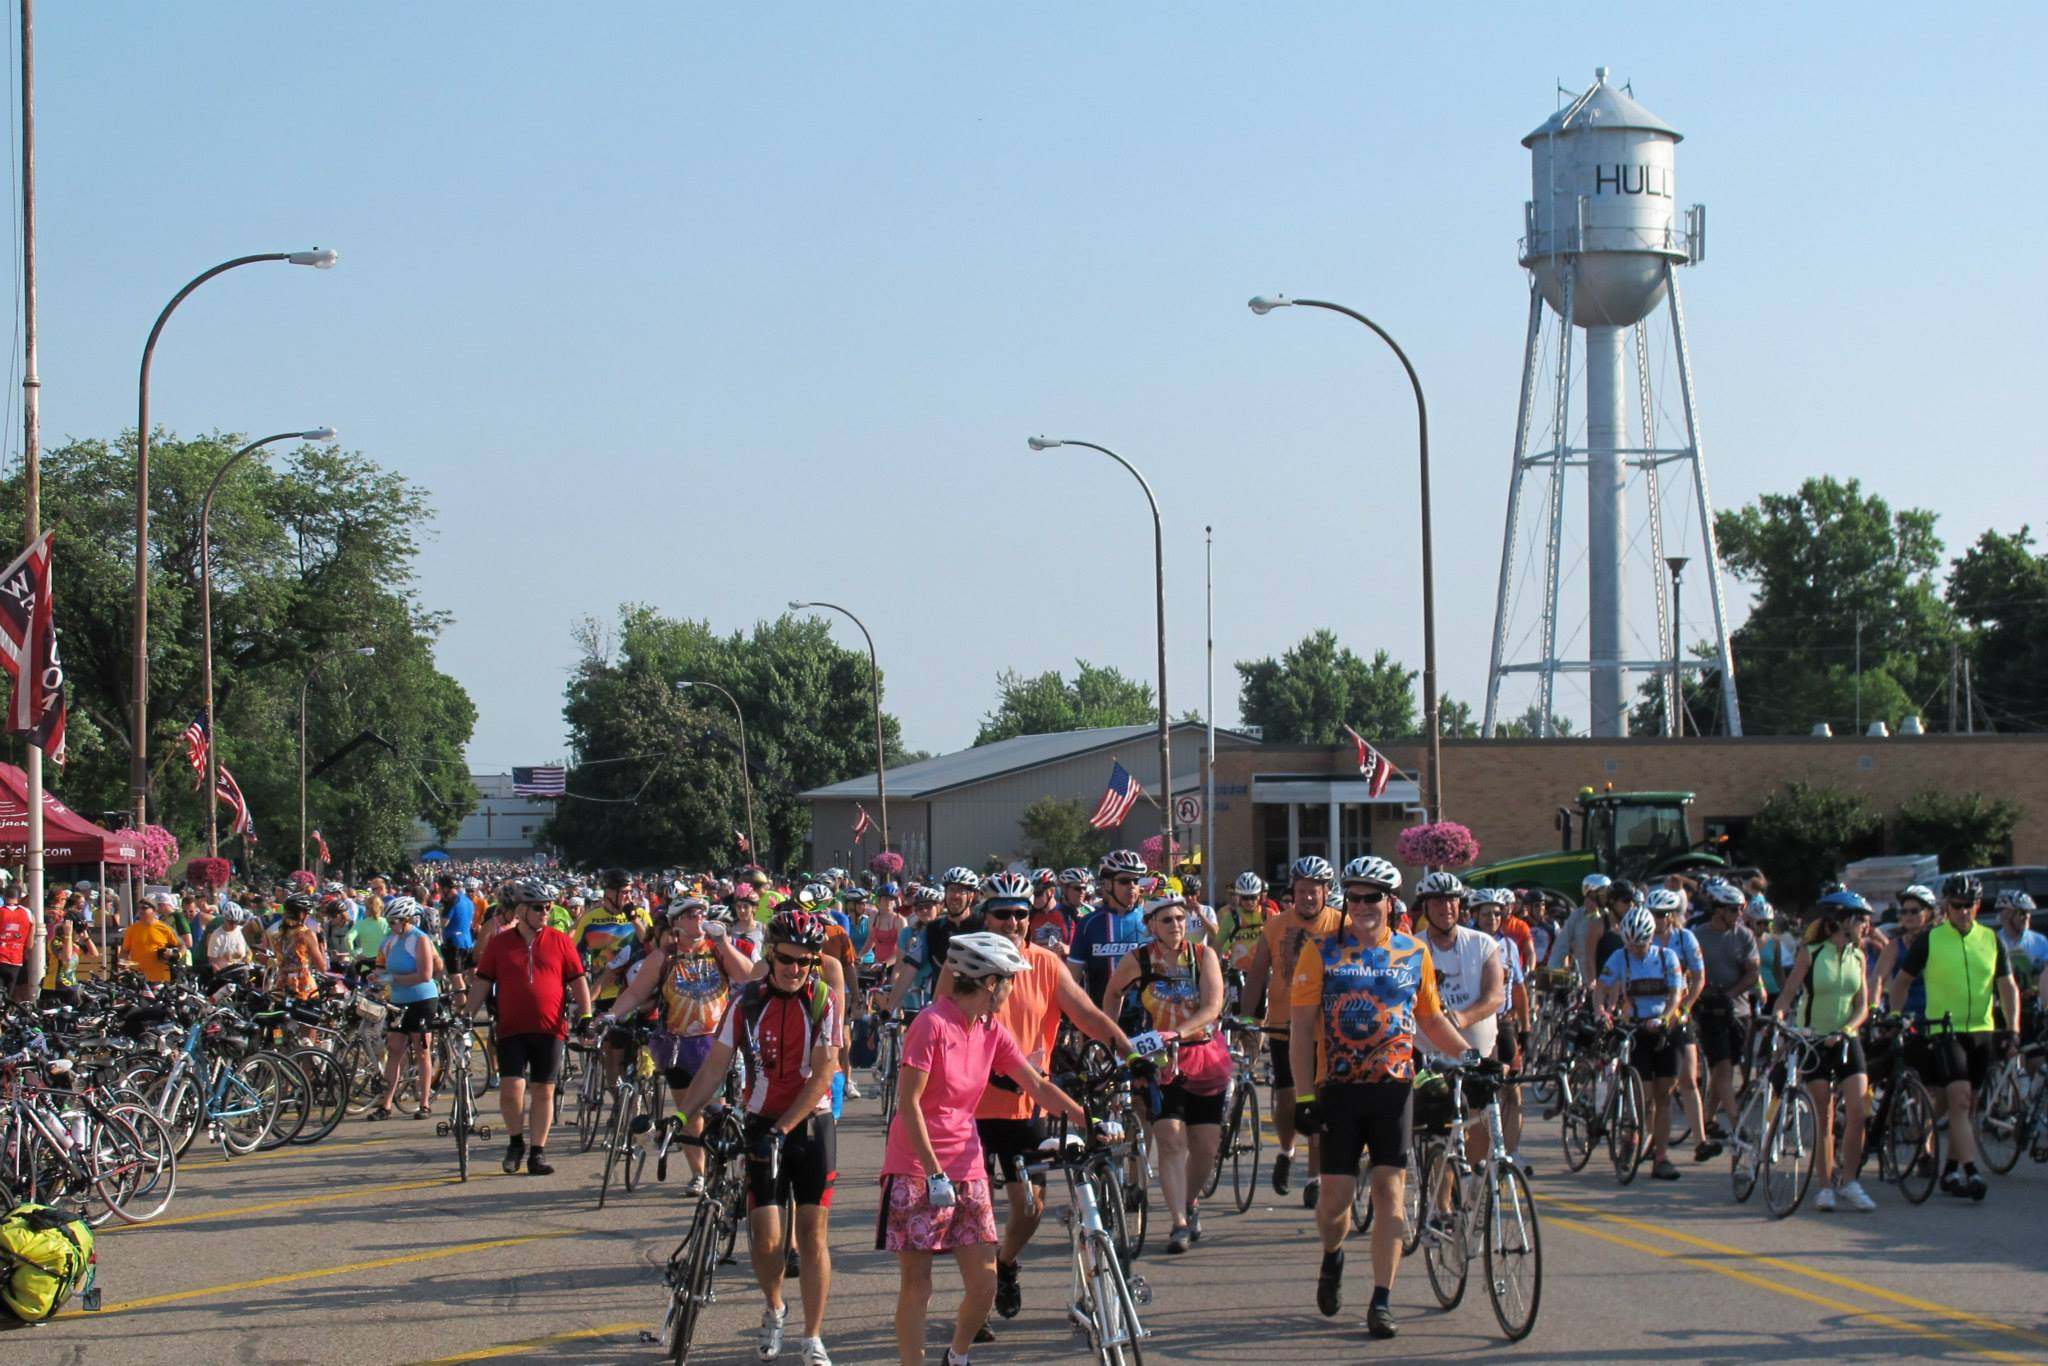 Iowa's small towns welcomed us with open arms as we swept in like locusts and ate everything in sight.